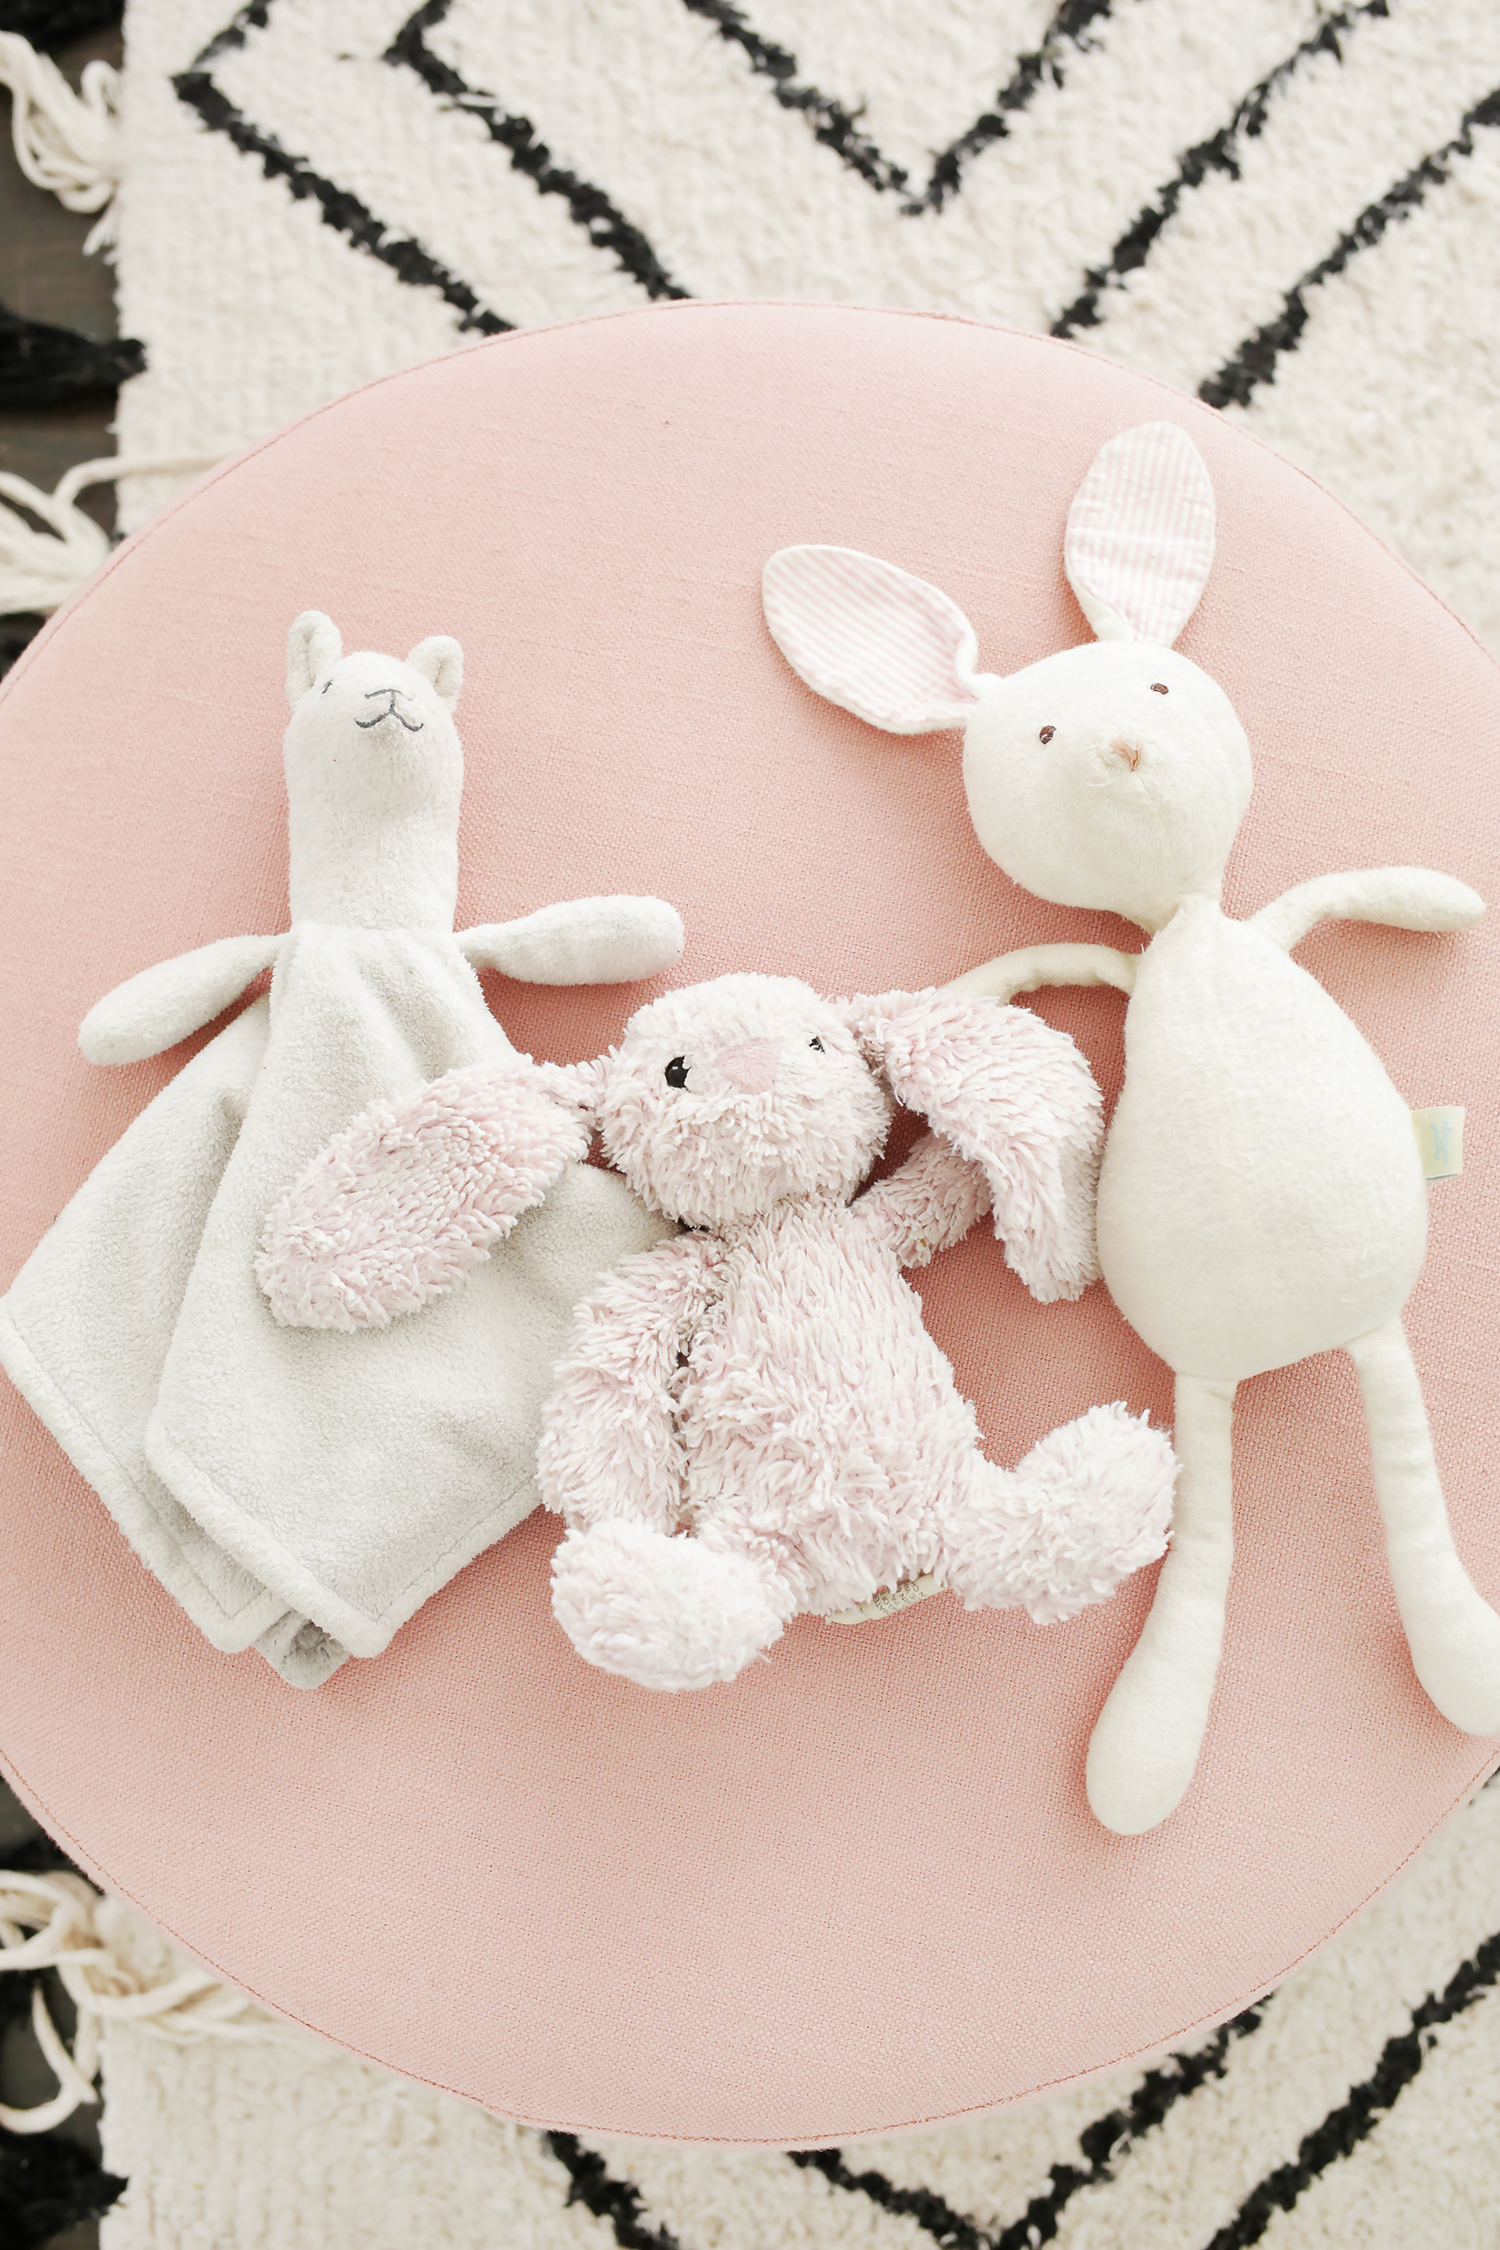 Stuffed Animal/Lovie Coloring Pages For Lola